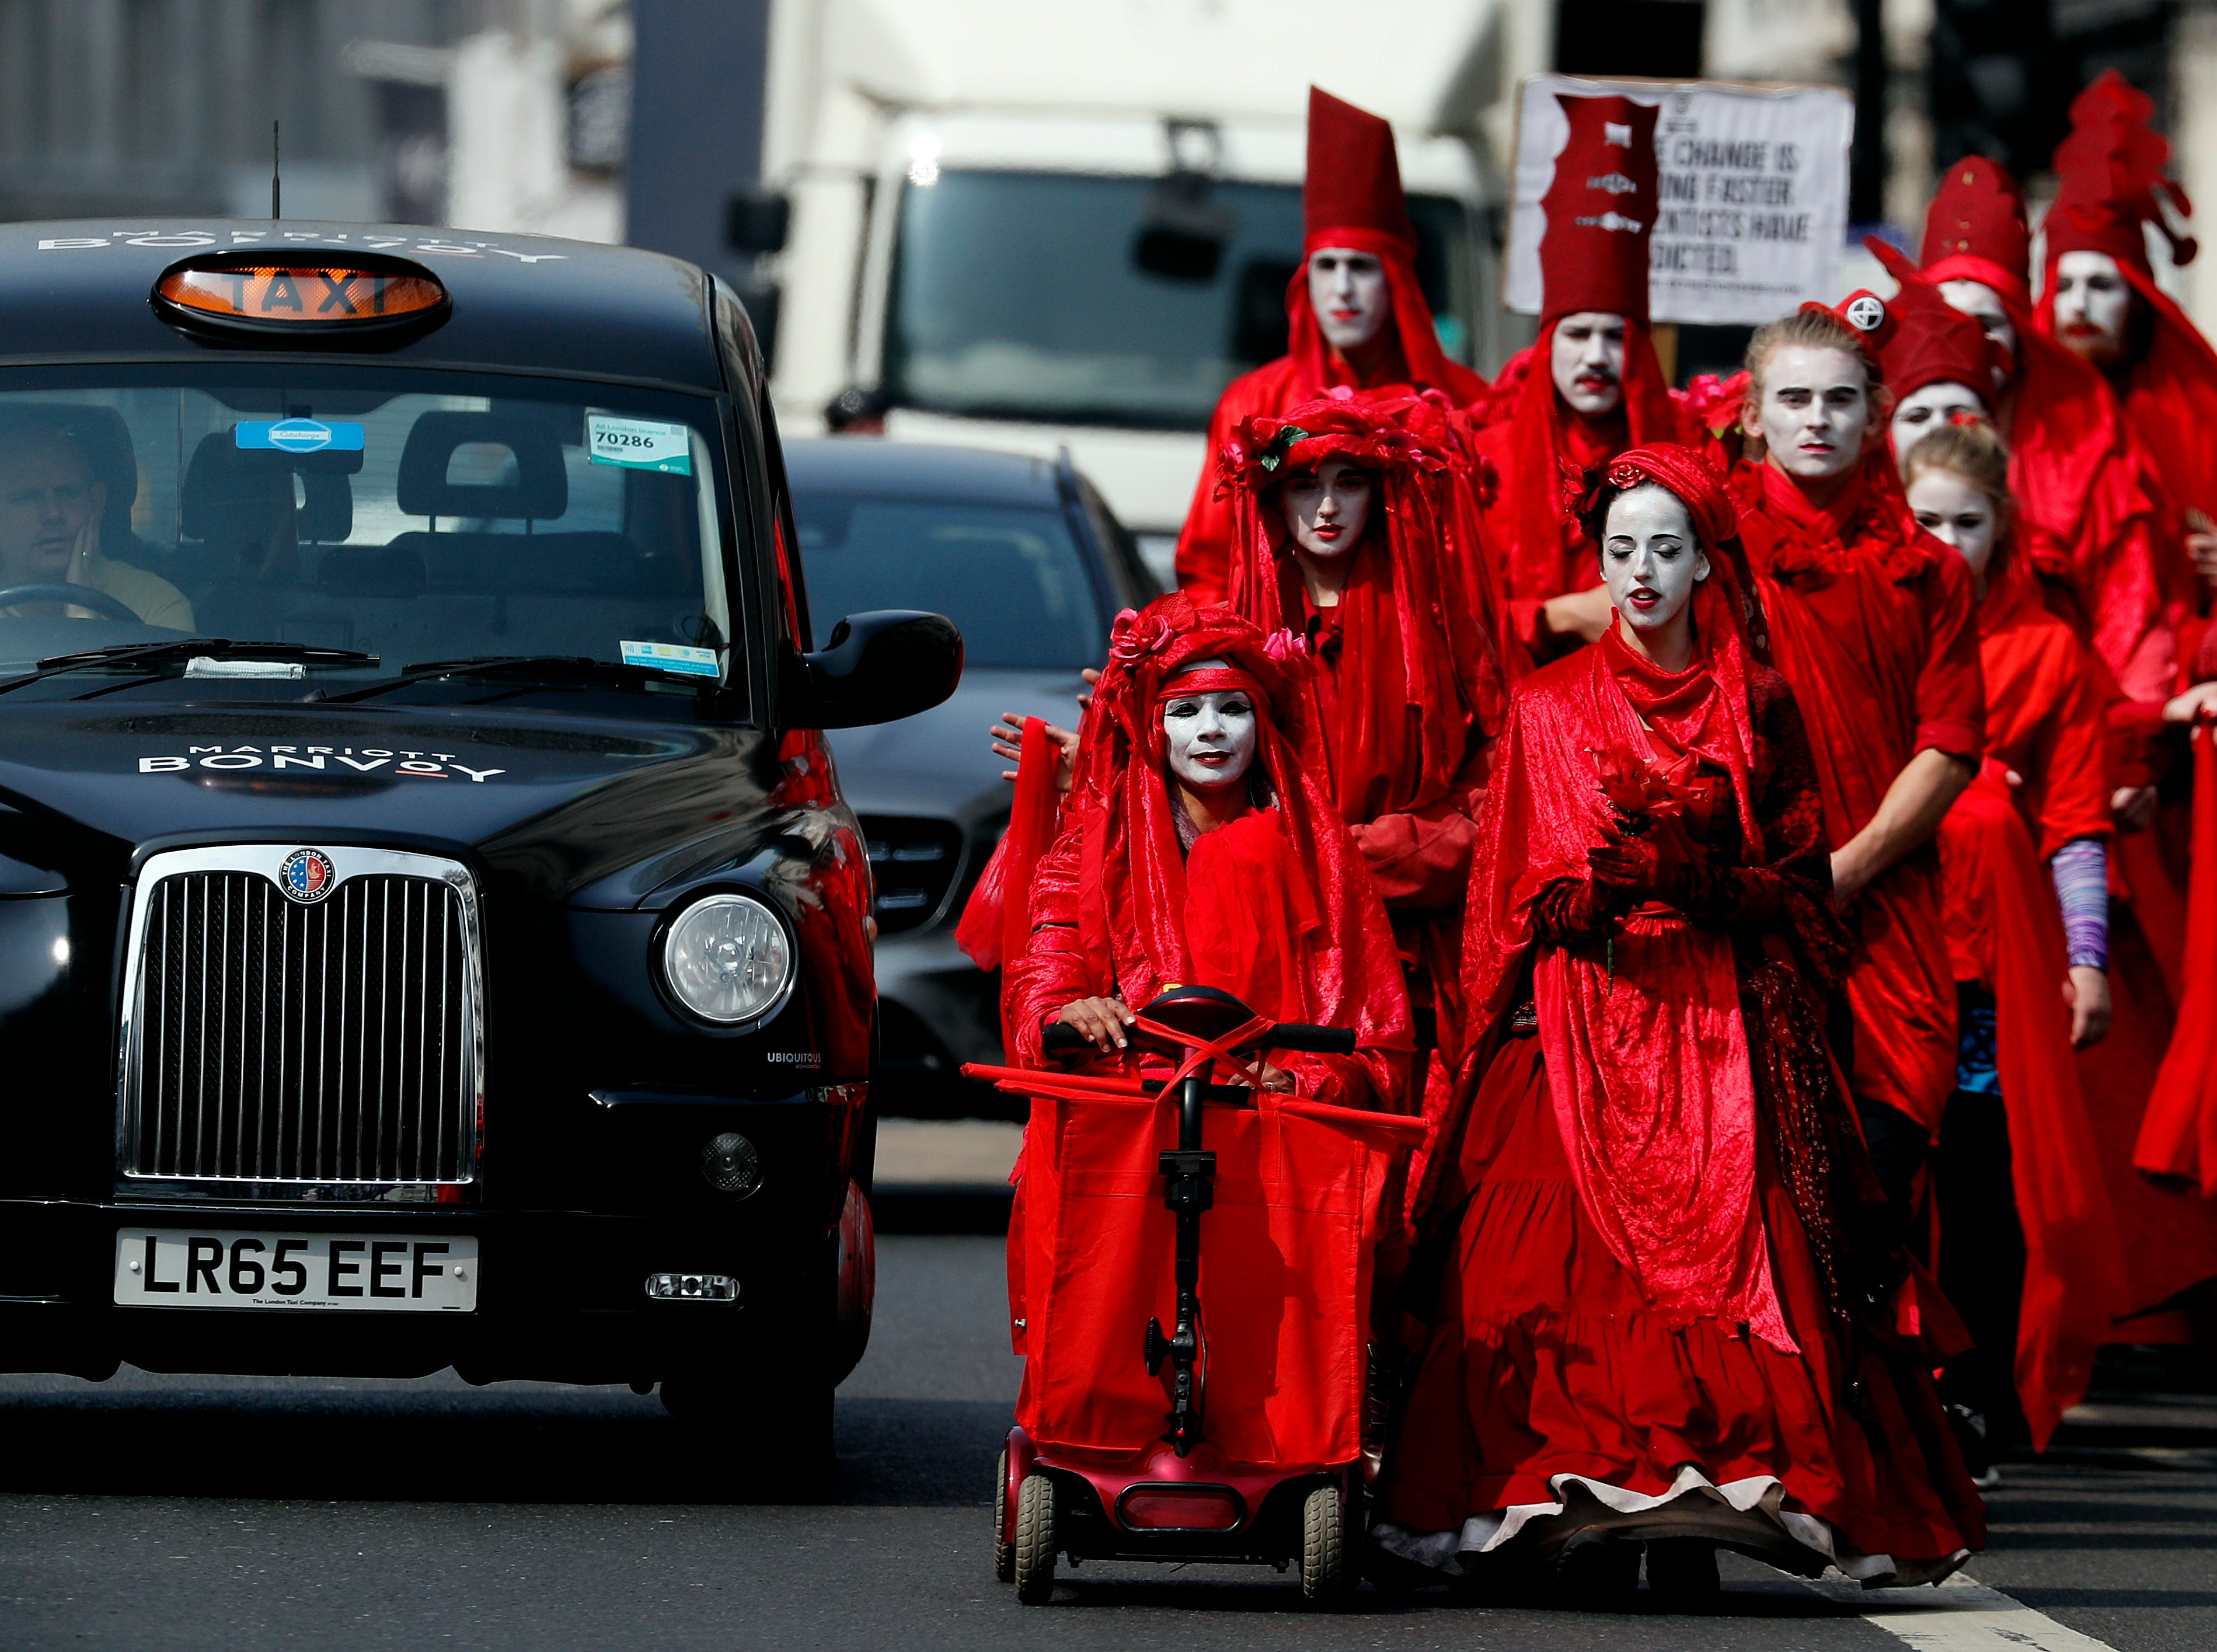 Members of the so called 'Red Brigade' march in disobedience on the street from Oxford Circus to Piccadilly Circus to protest in London, Wednesday, April 17, 2019. The group Extinction Rebellion is calling for a week of civil disobedience against what it says is the failure to tackle the causes of climate change.